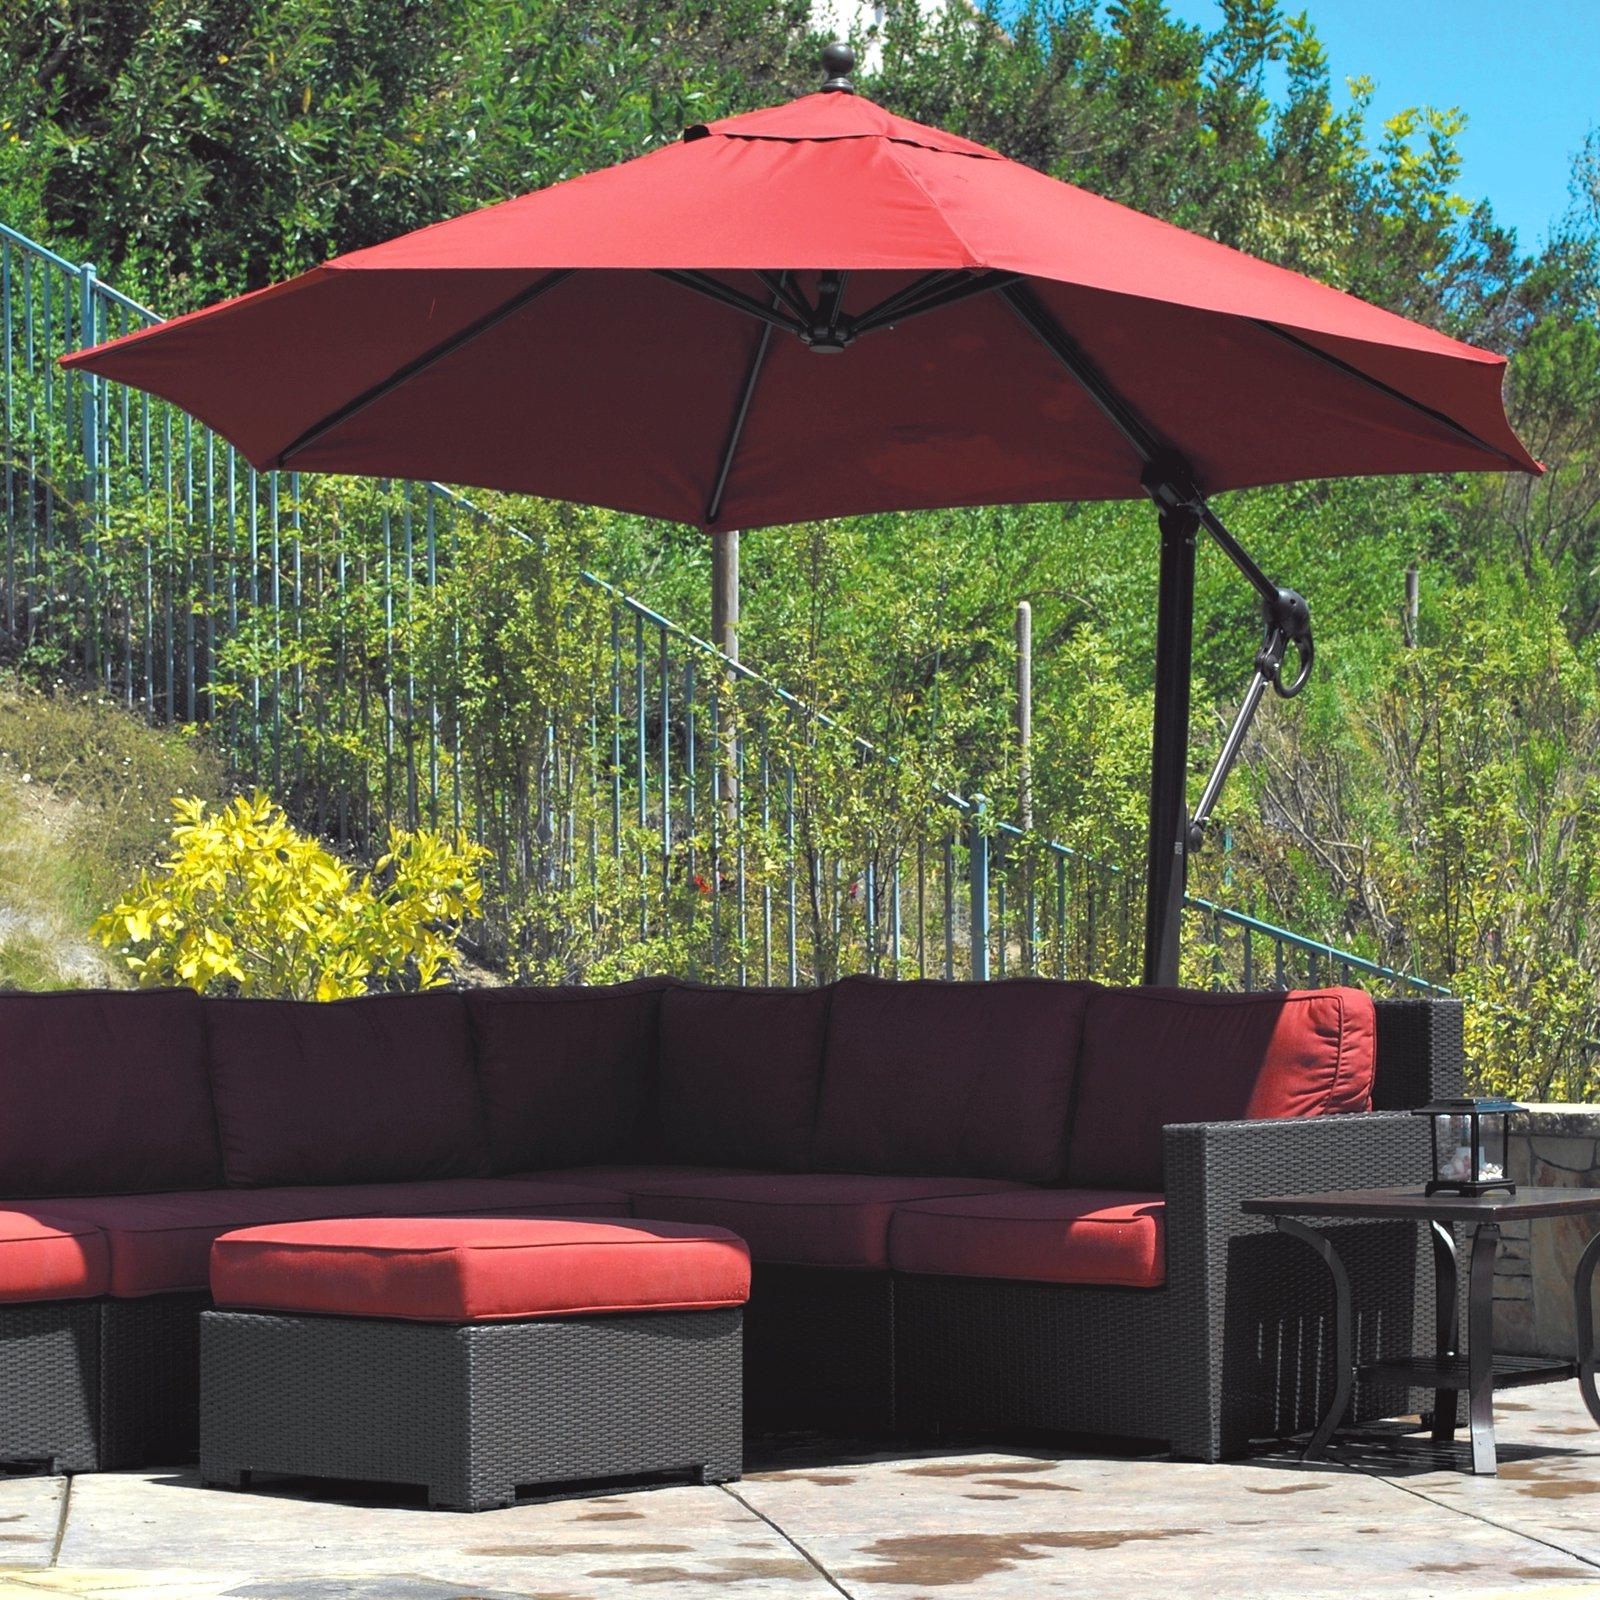 2019 Small Patio Umbrellas Pertaining To Nice Small Patio Umbrella — Life On The Move (View 1 of 20)